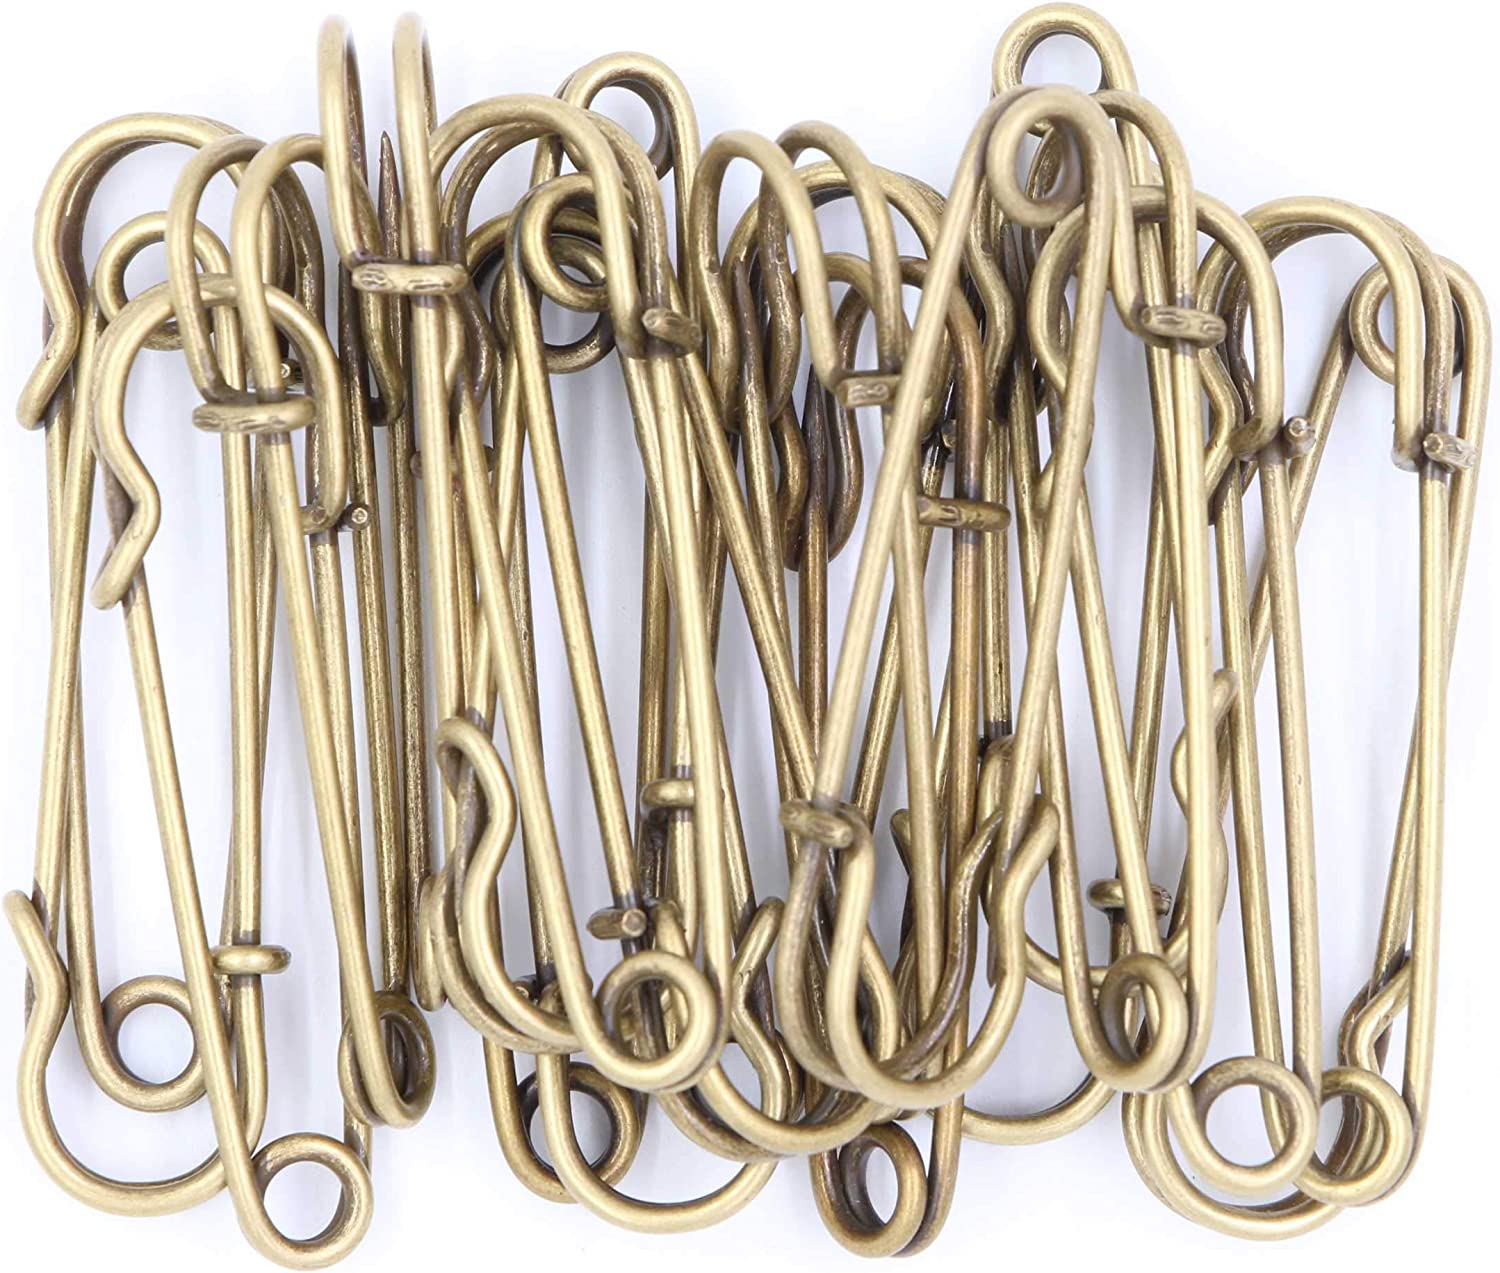 60 Large Metal Safety Pins Stainless Steel Heavy Duty Safety Pins Brooch Pins Fastening Jewellery Sewing Clothes For Kilts Blankets Skirts Crafts Pack of 10